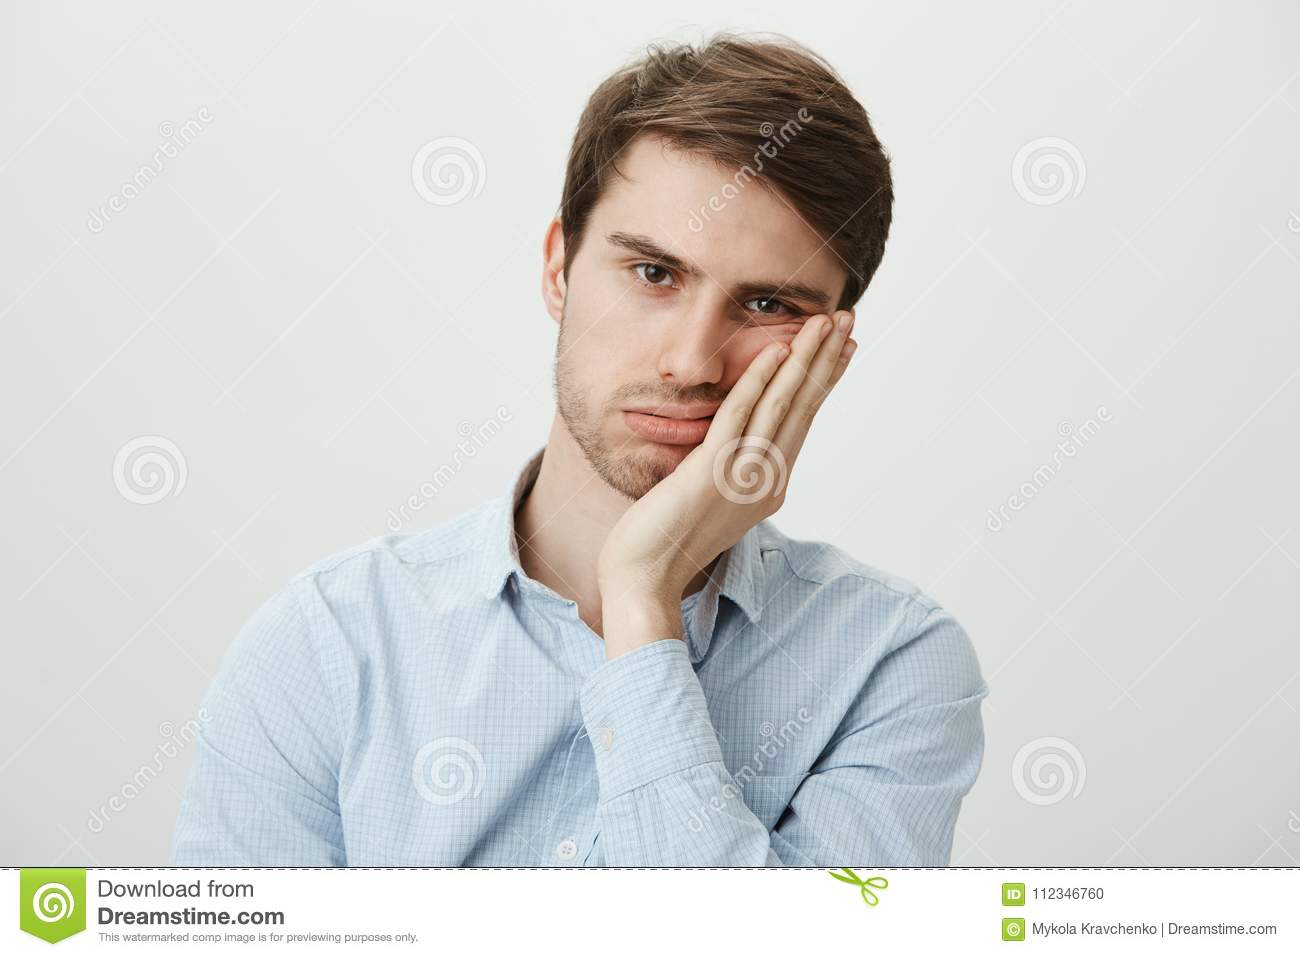 Indoor shot of upset irritated caucasian guy leaning on palm and sighing at camera, being bored and fed up of annoying